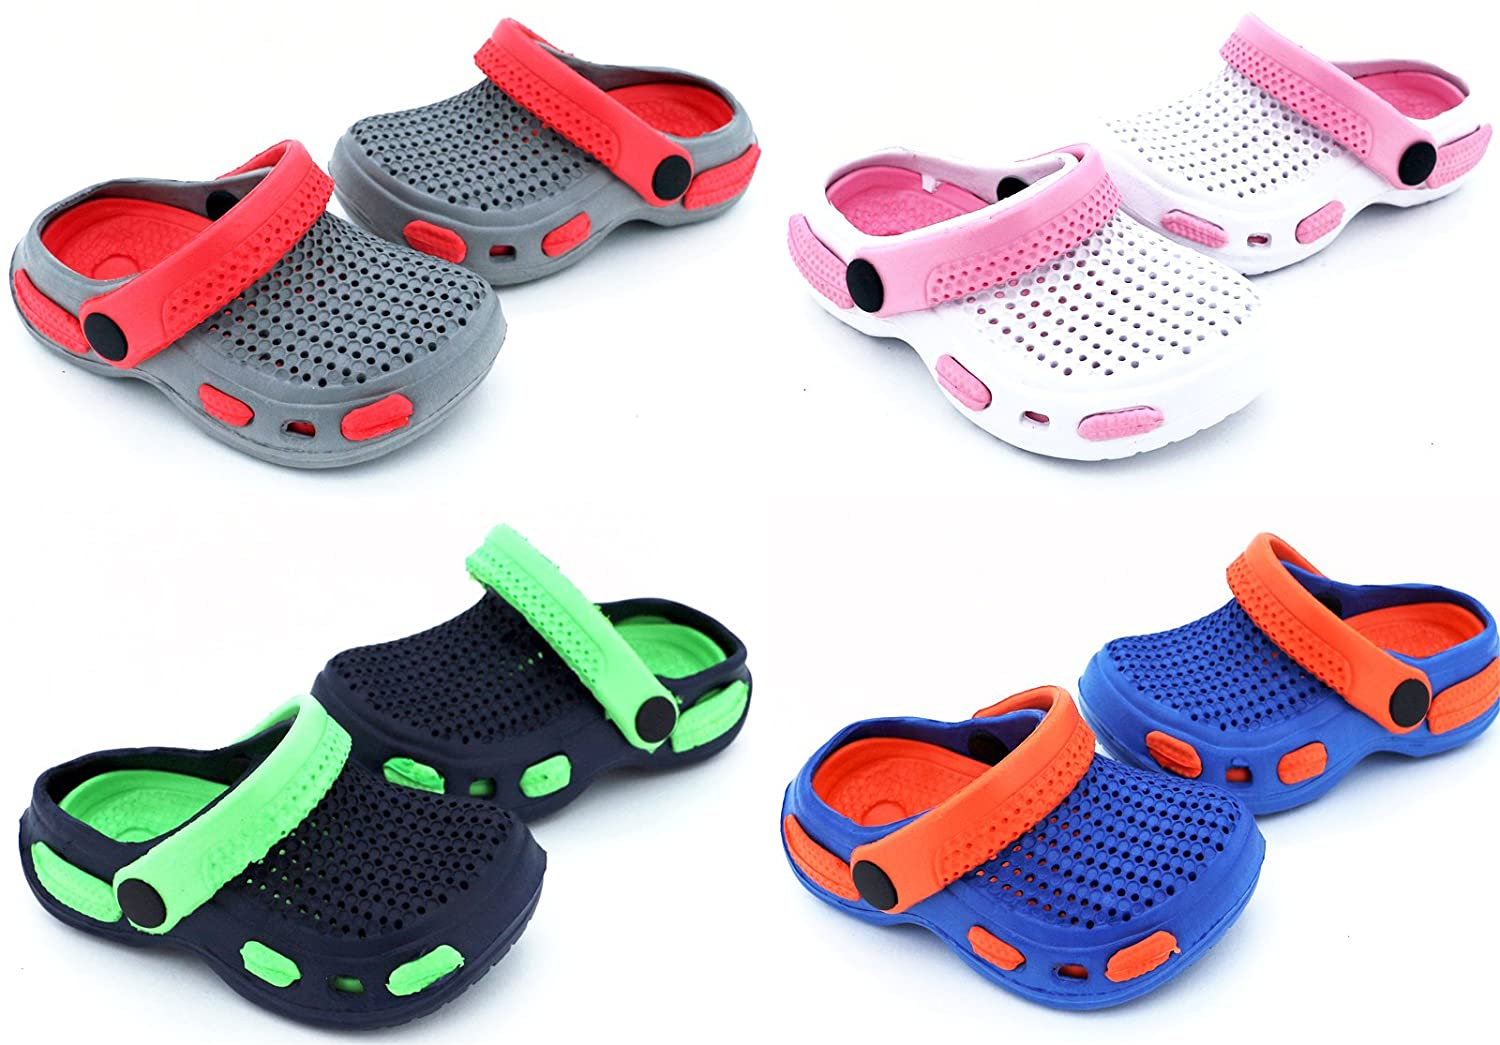 Fashion& Joy - CLOGS Baby in blau orange Gr. 19 mit Fersenriemen und Profilsohle - Kinder Badeschuhe Sandalen - GESCHÜTZT UND GUT BELÜFTET durch den Sommer - Hausschuhe Pantoletten Babyclogs Unisex Clog Typ429 Heimtexland